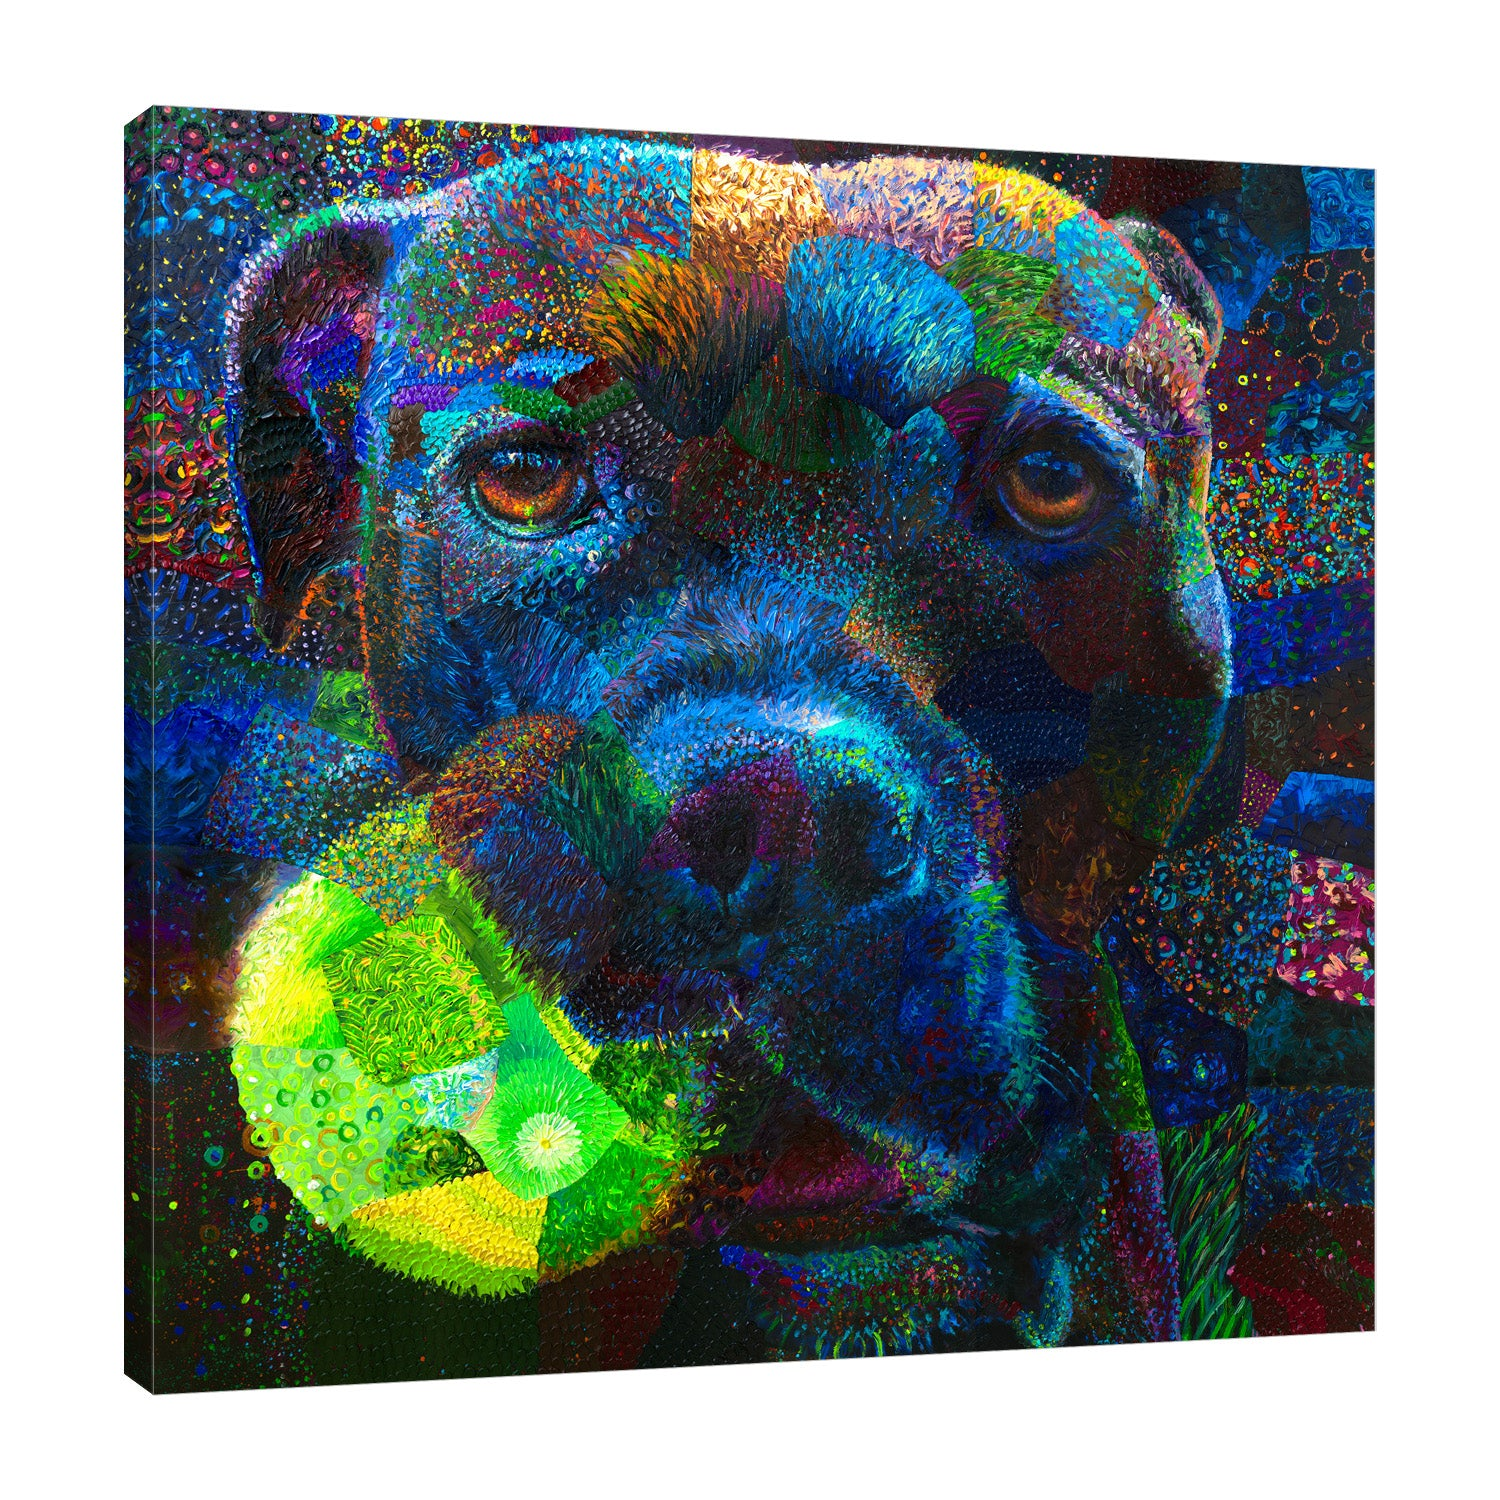 Iris-Scott,Modern & Contemporary,Animals,dogs,animals,tennis ball,balls,